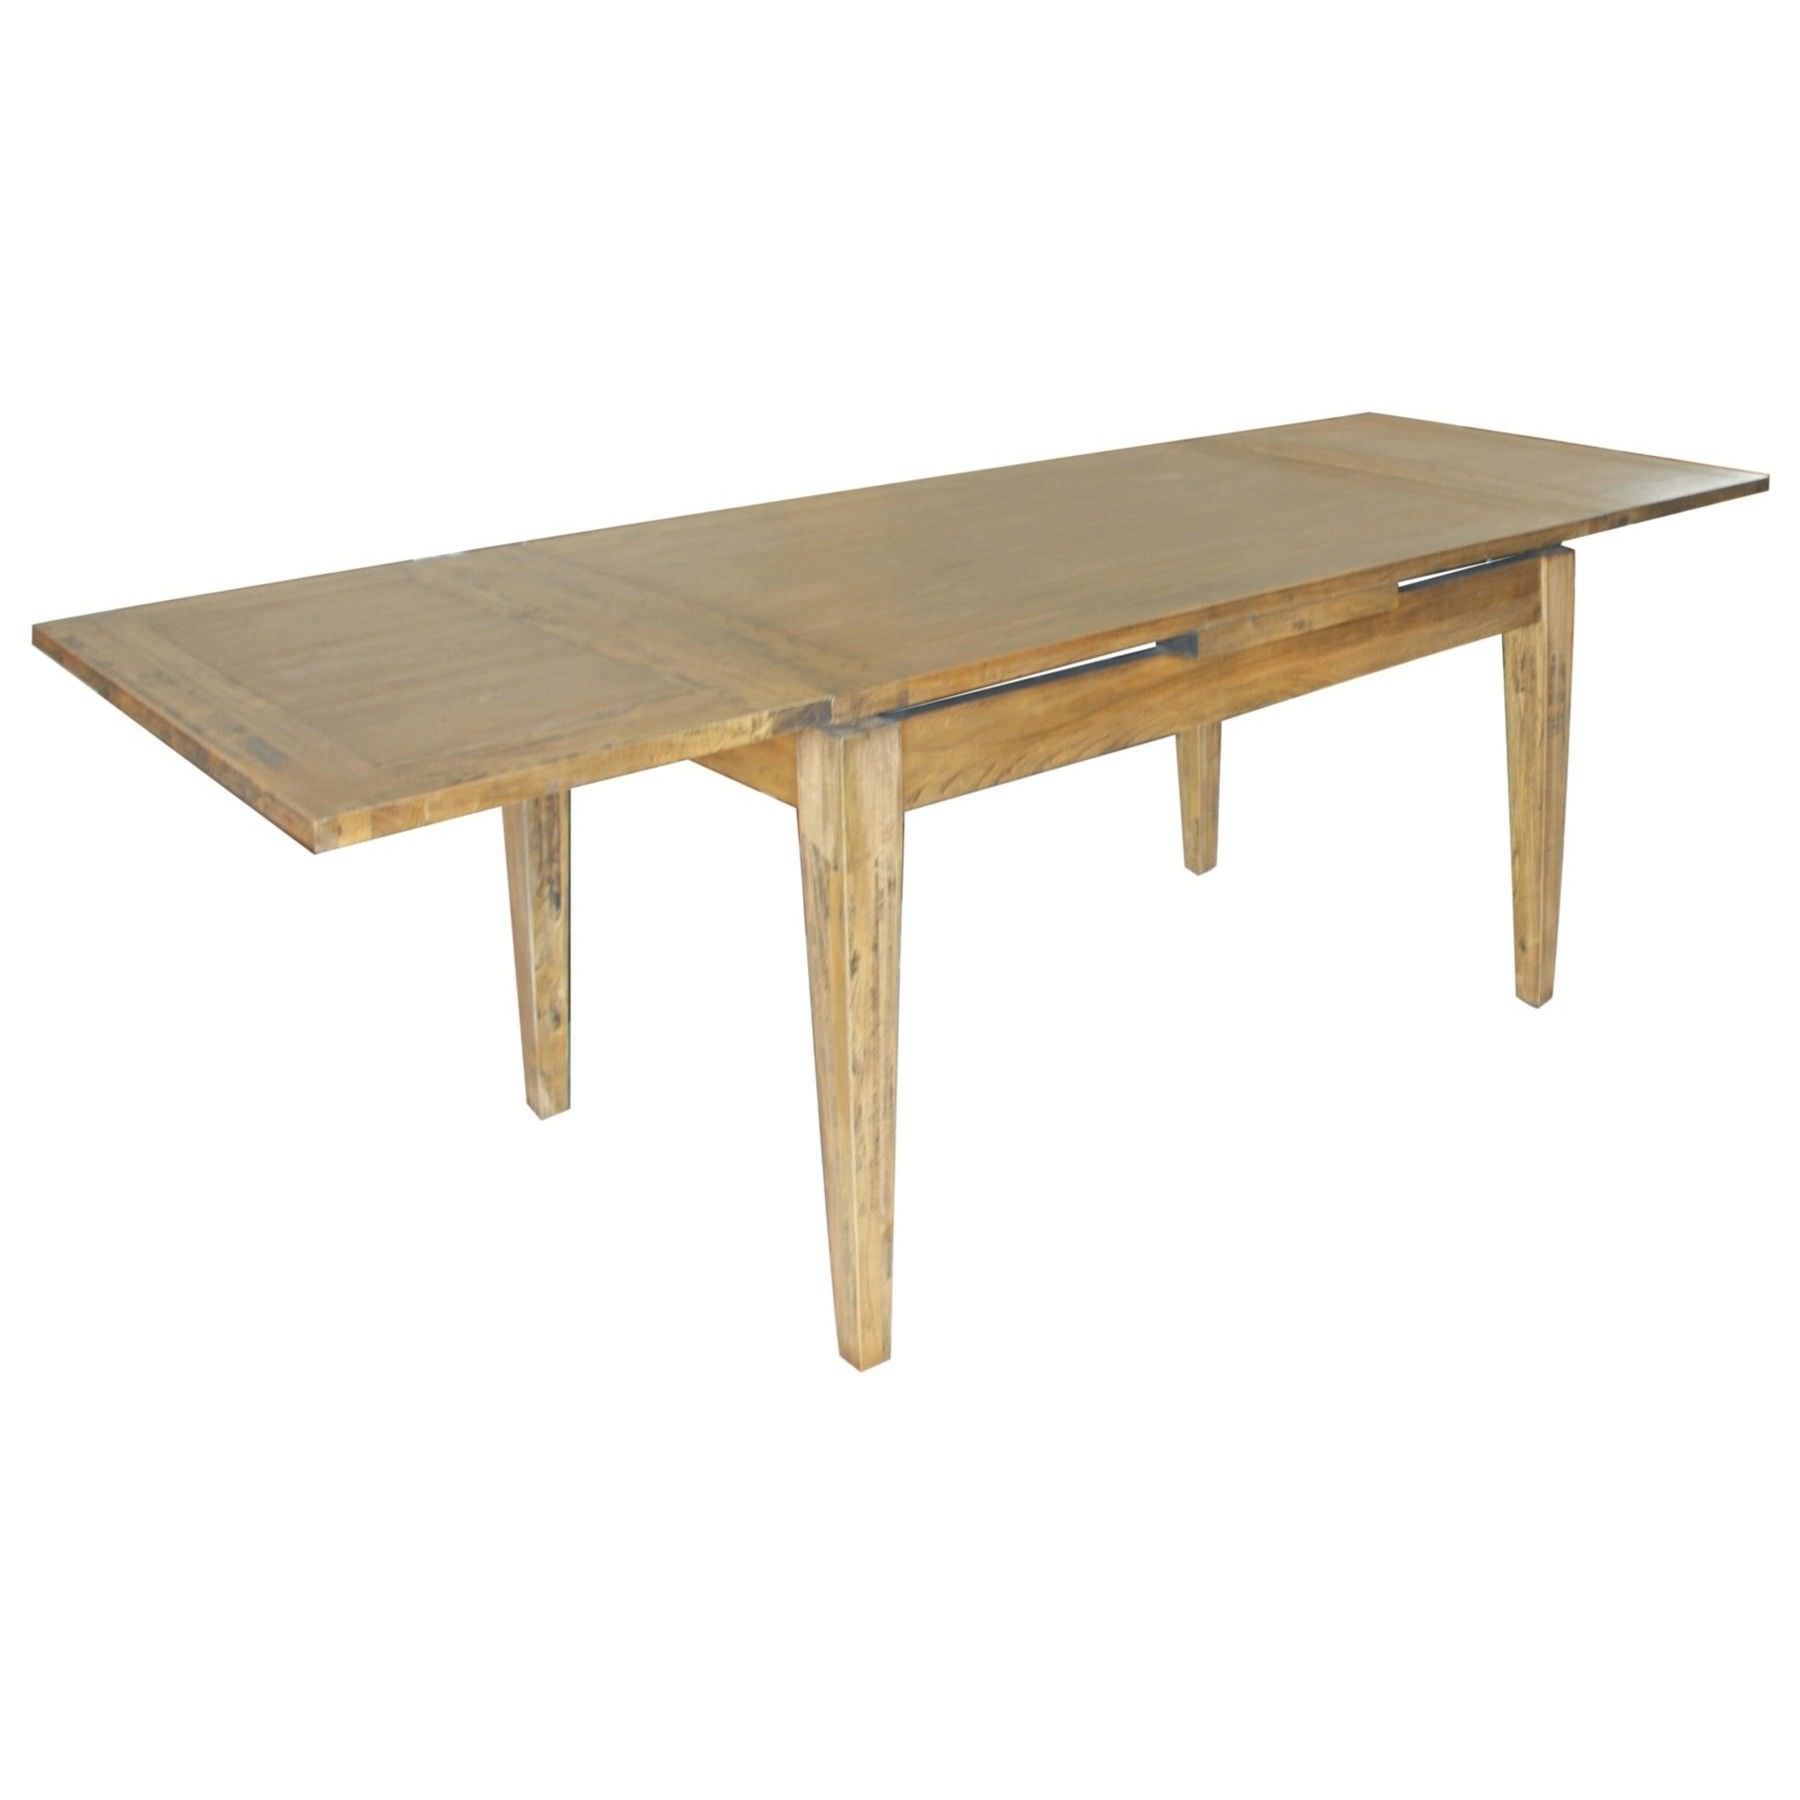 Sherwood Oak Timber Extendable Dining Table, 150-260cm